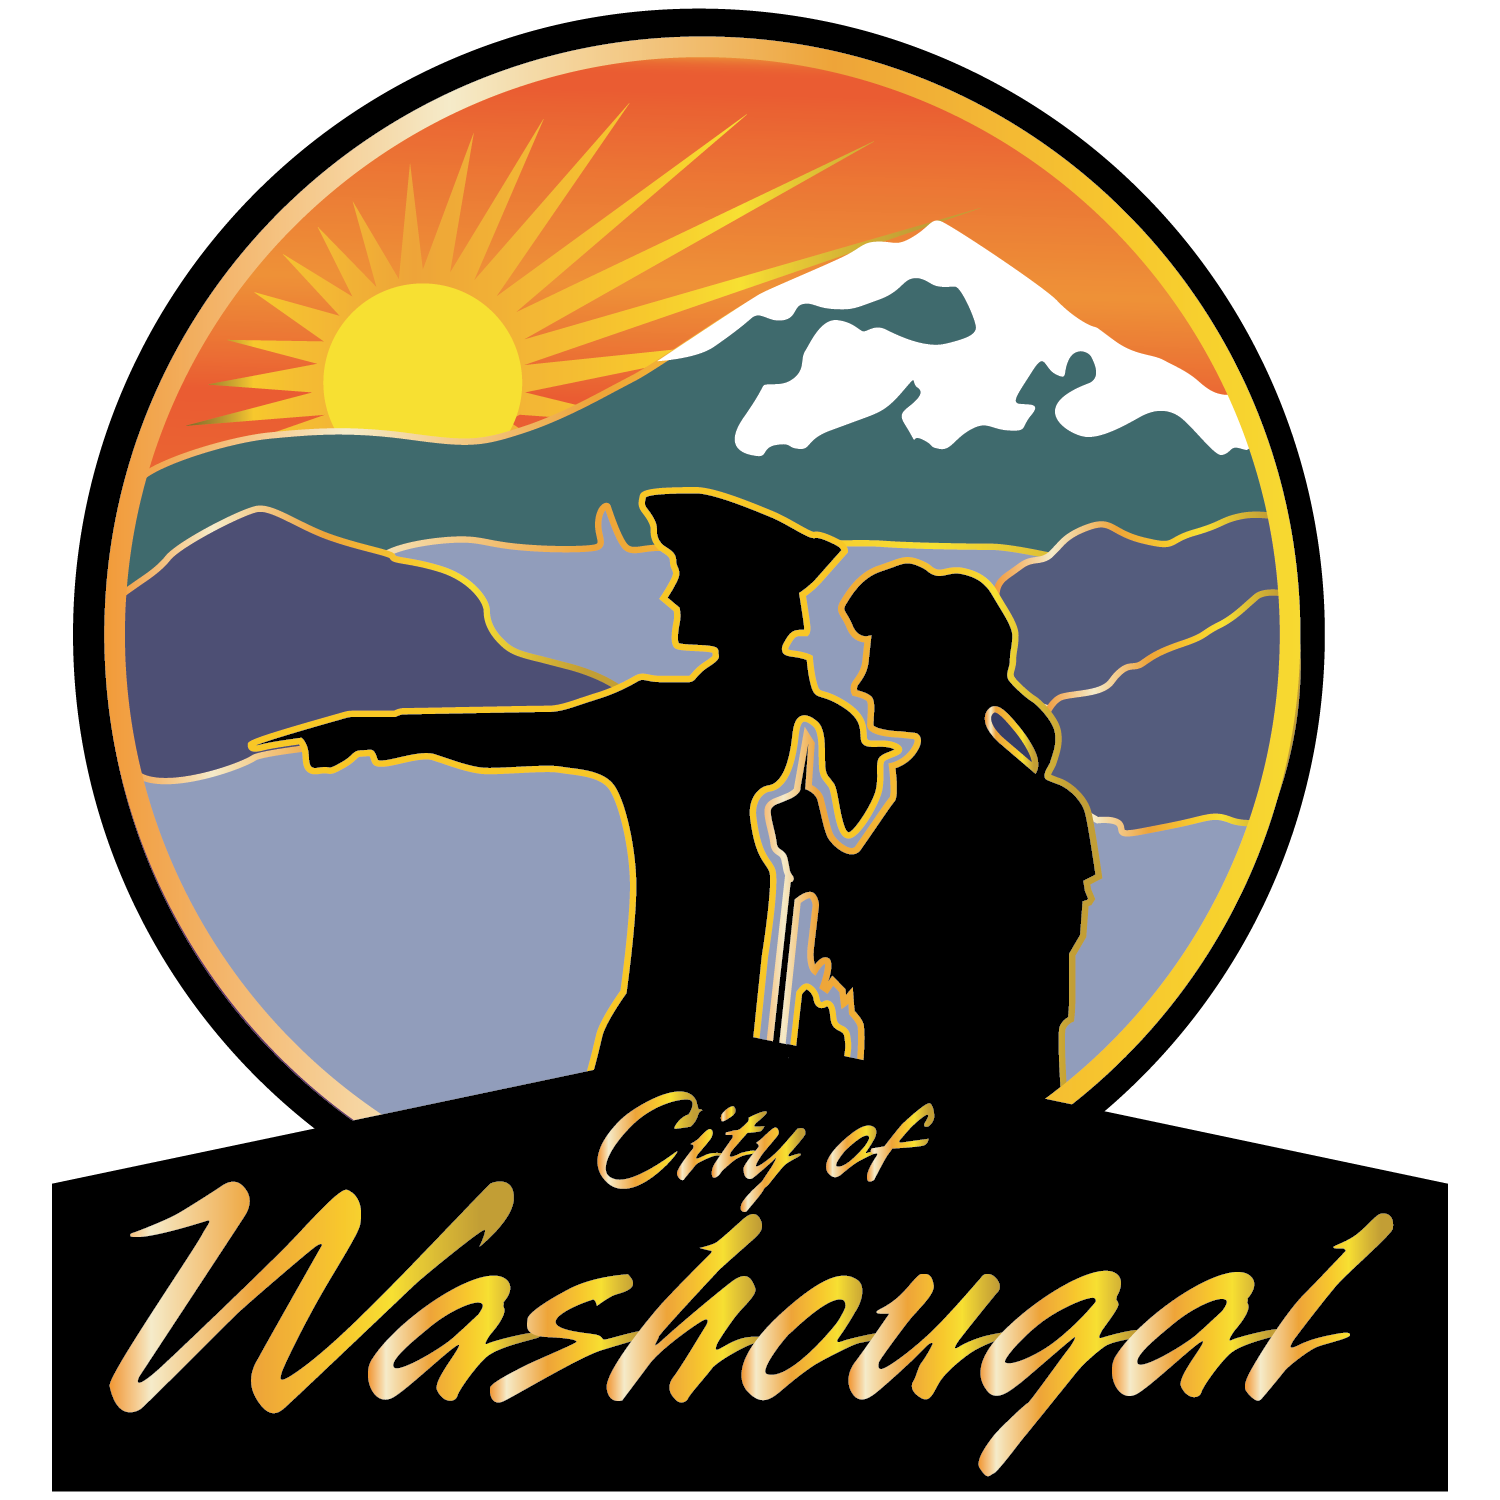 City of Washougal logo with Lewis & Clark silhouette in front of columbia gorge and Mt. hood